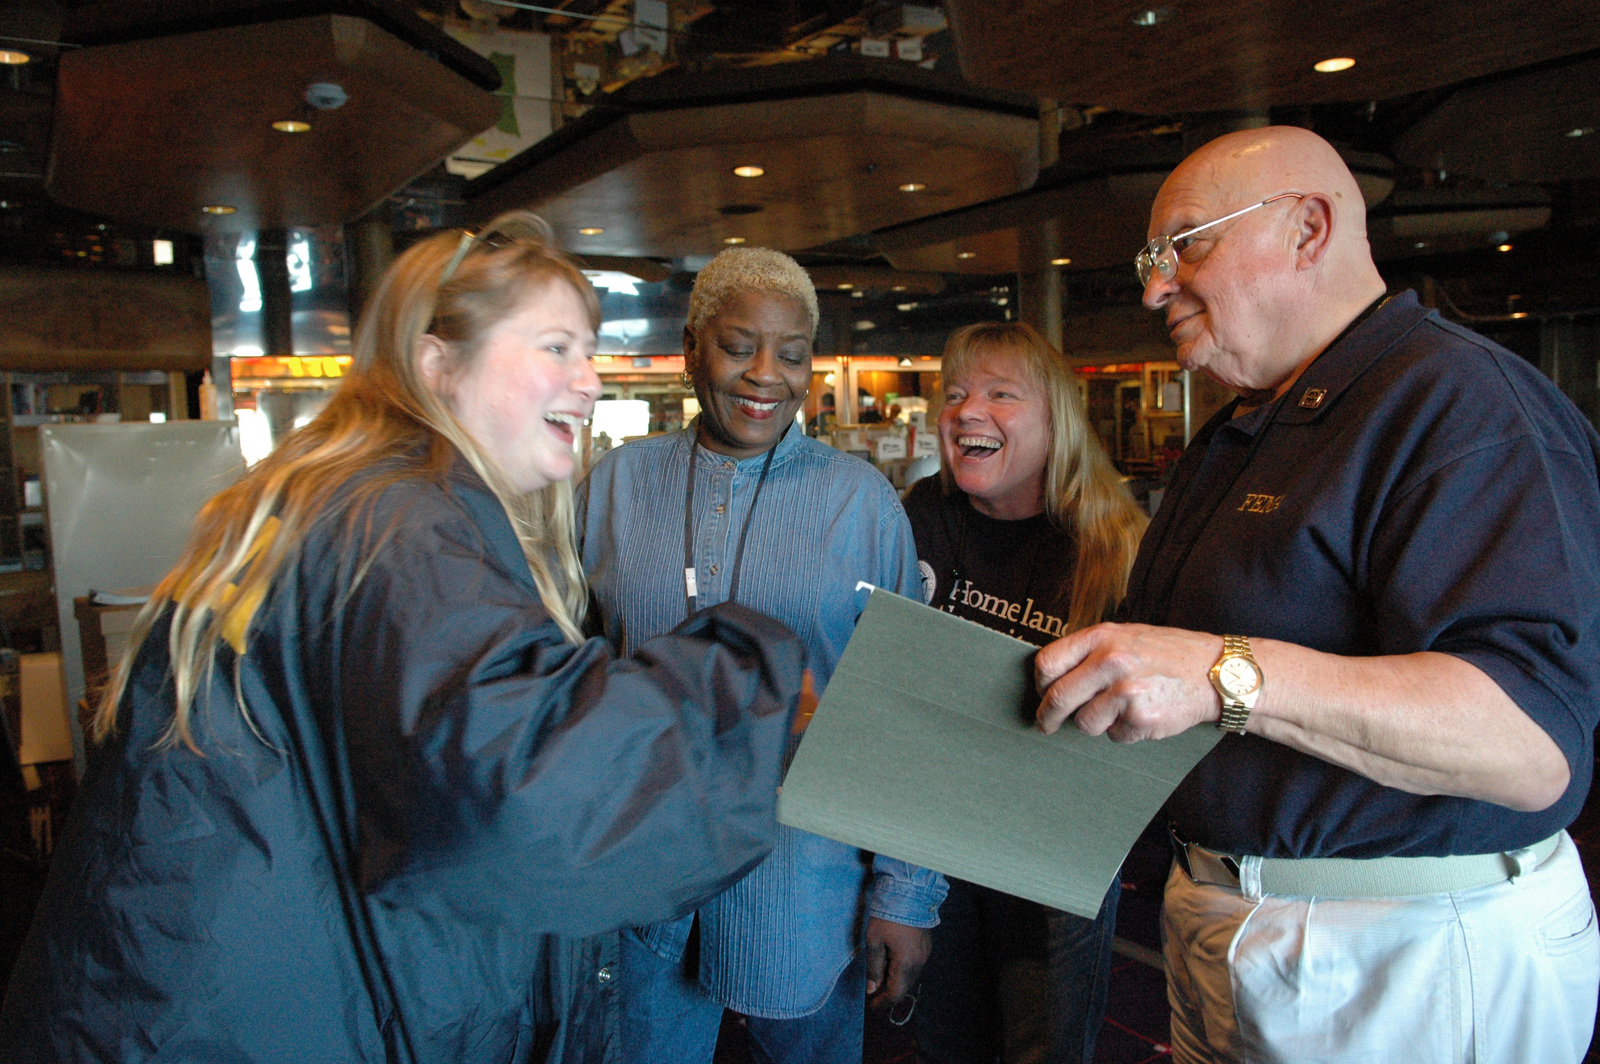 [Hurricane Katrina] Pascagoula, Miss., February 27, 2006 -- FEMA  officials (L-R) Traci Skinner, Betty C. Lewis, Pattie Silven and Rico Borrazo share a light moment on the cruise ship Holiday as they await the disembarkment of the final resident aboard ship.  The Holiday served as temporary housing for Mississippi residents displaced from their homes by Hurricane Katrina.  Mark Wolfe/FEMA